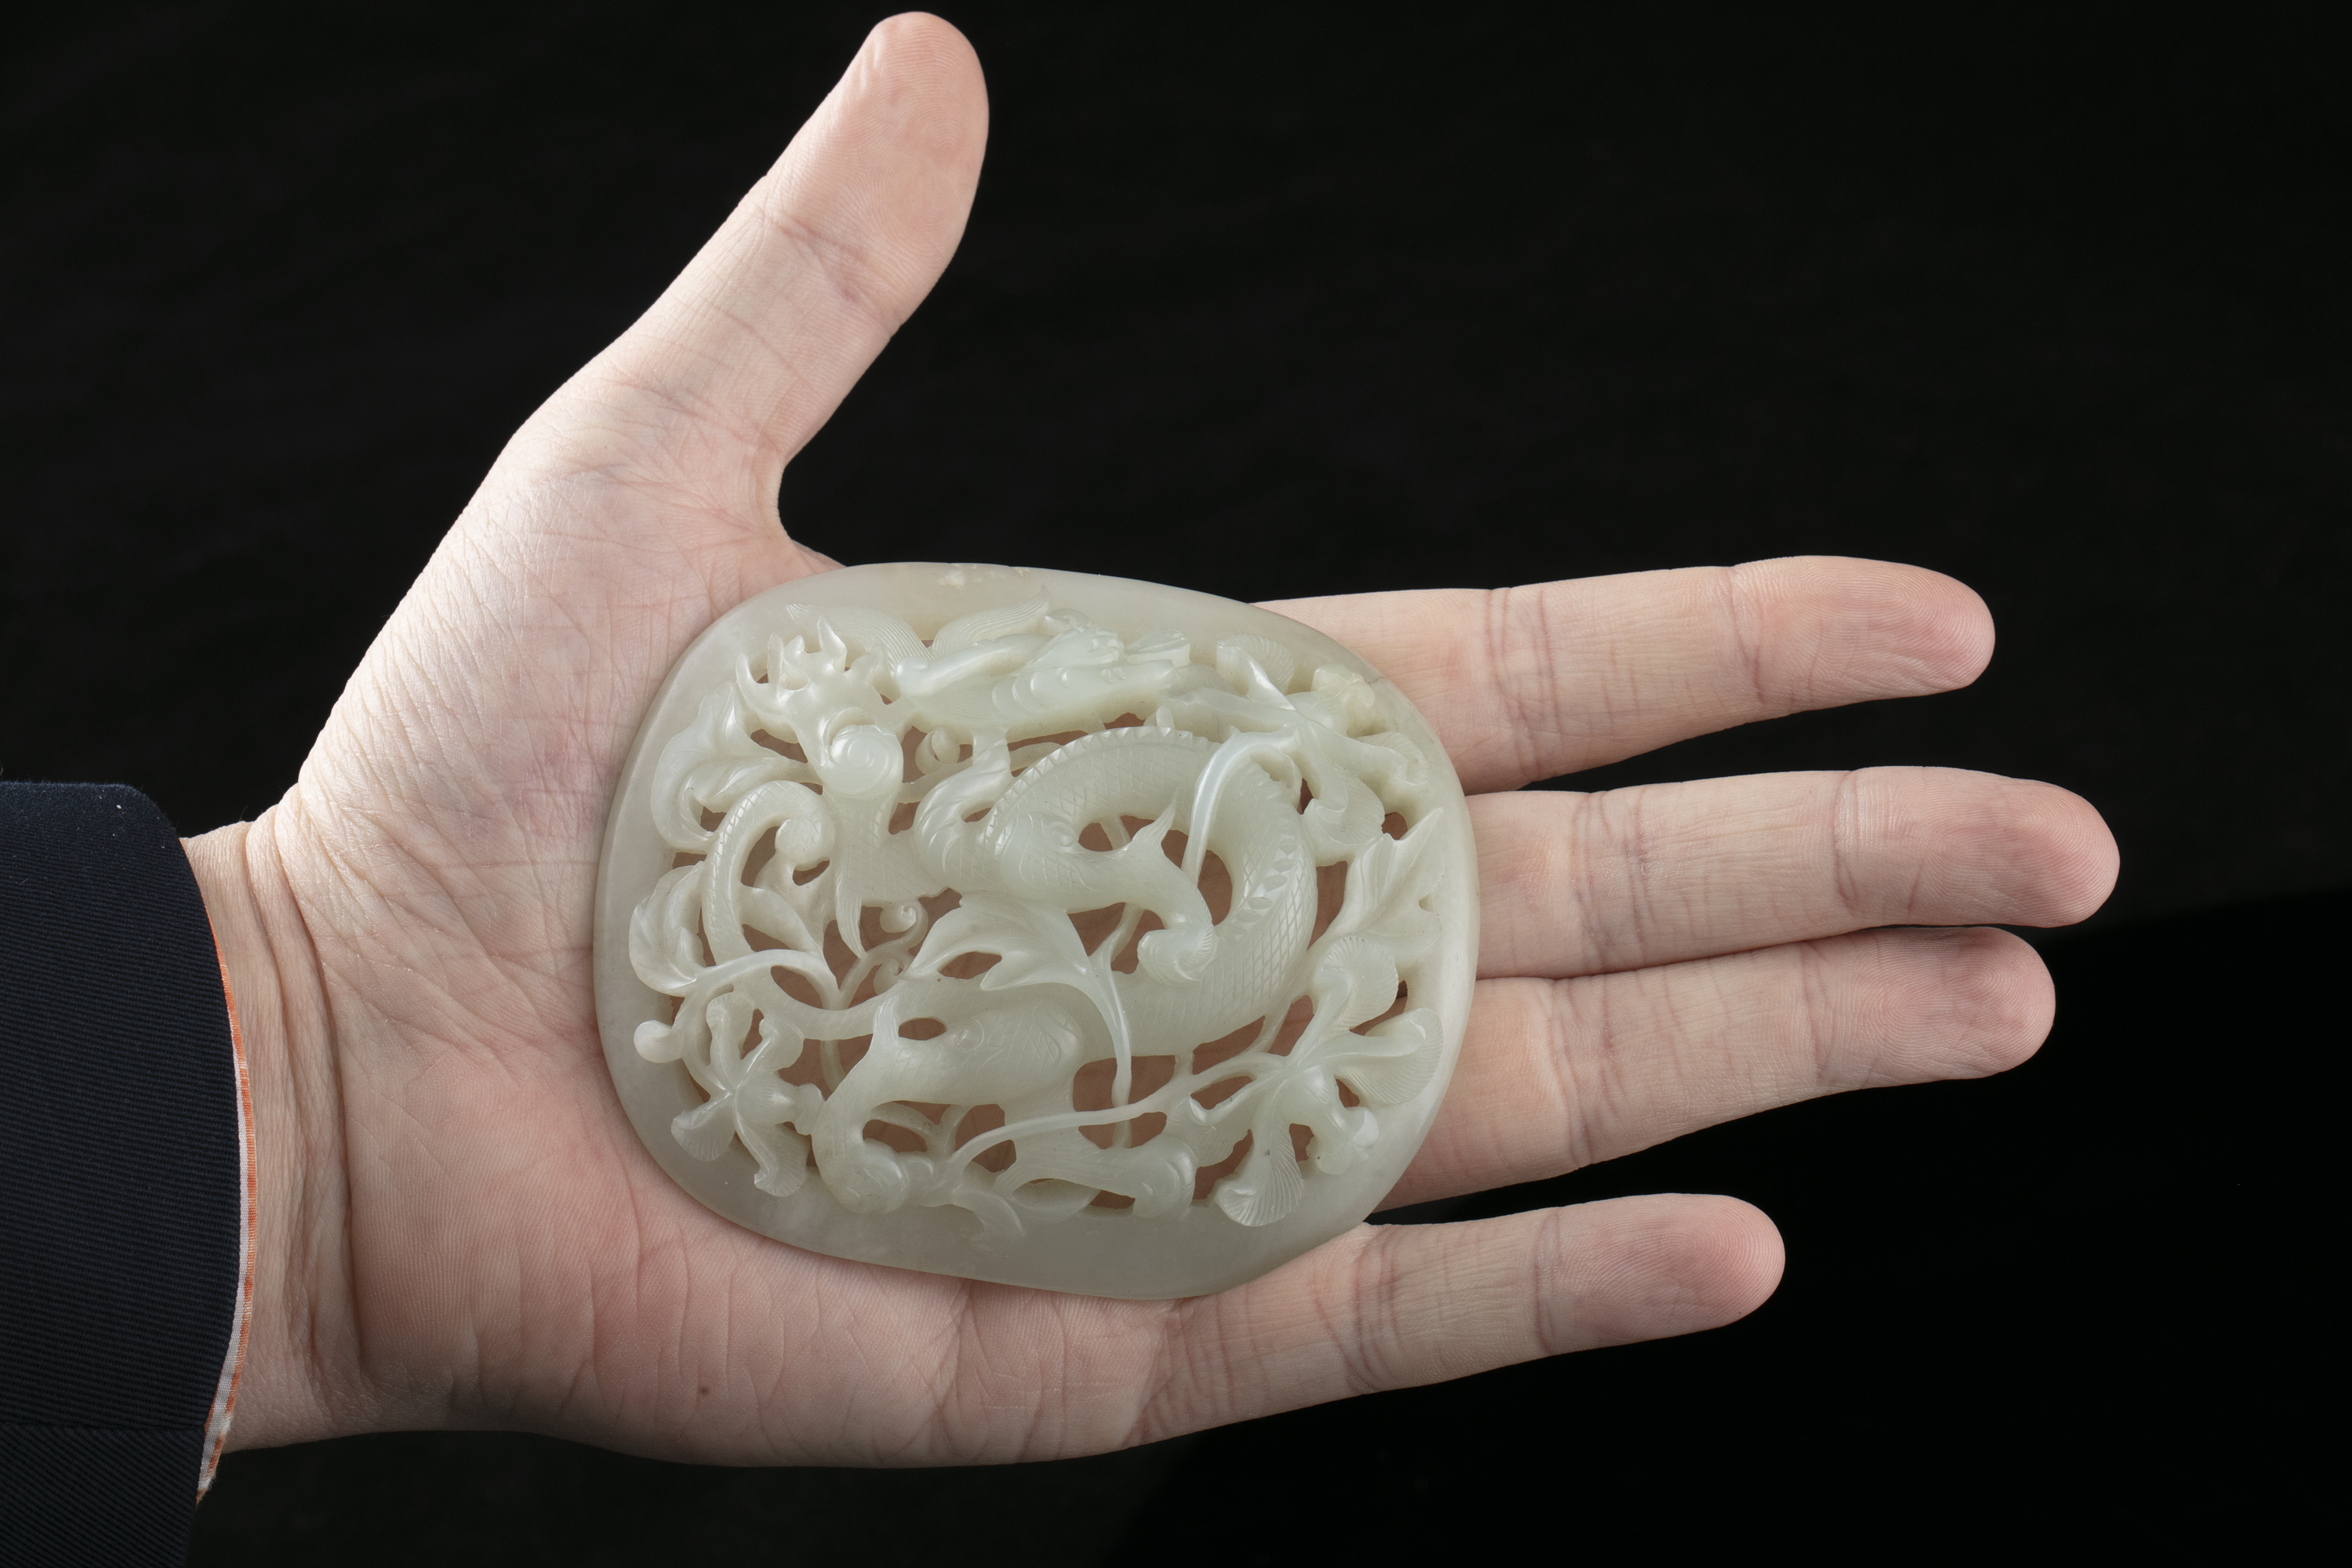 AN OPEN-WORKED WHITE JADE 'DRAGON' PLAQUE China, Antique, Possibly Ming Dynasty H: 7,8 cm - w: 9,2 - Image 14 of 20